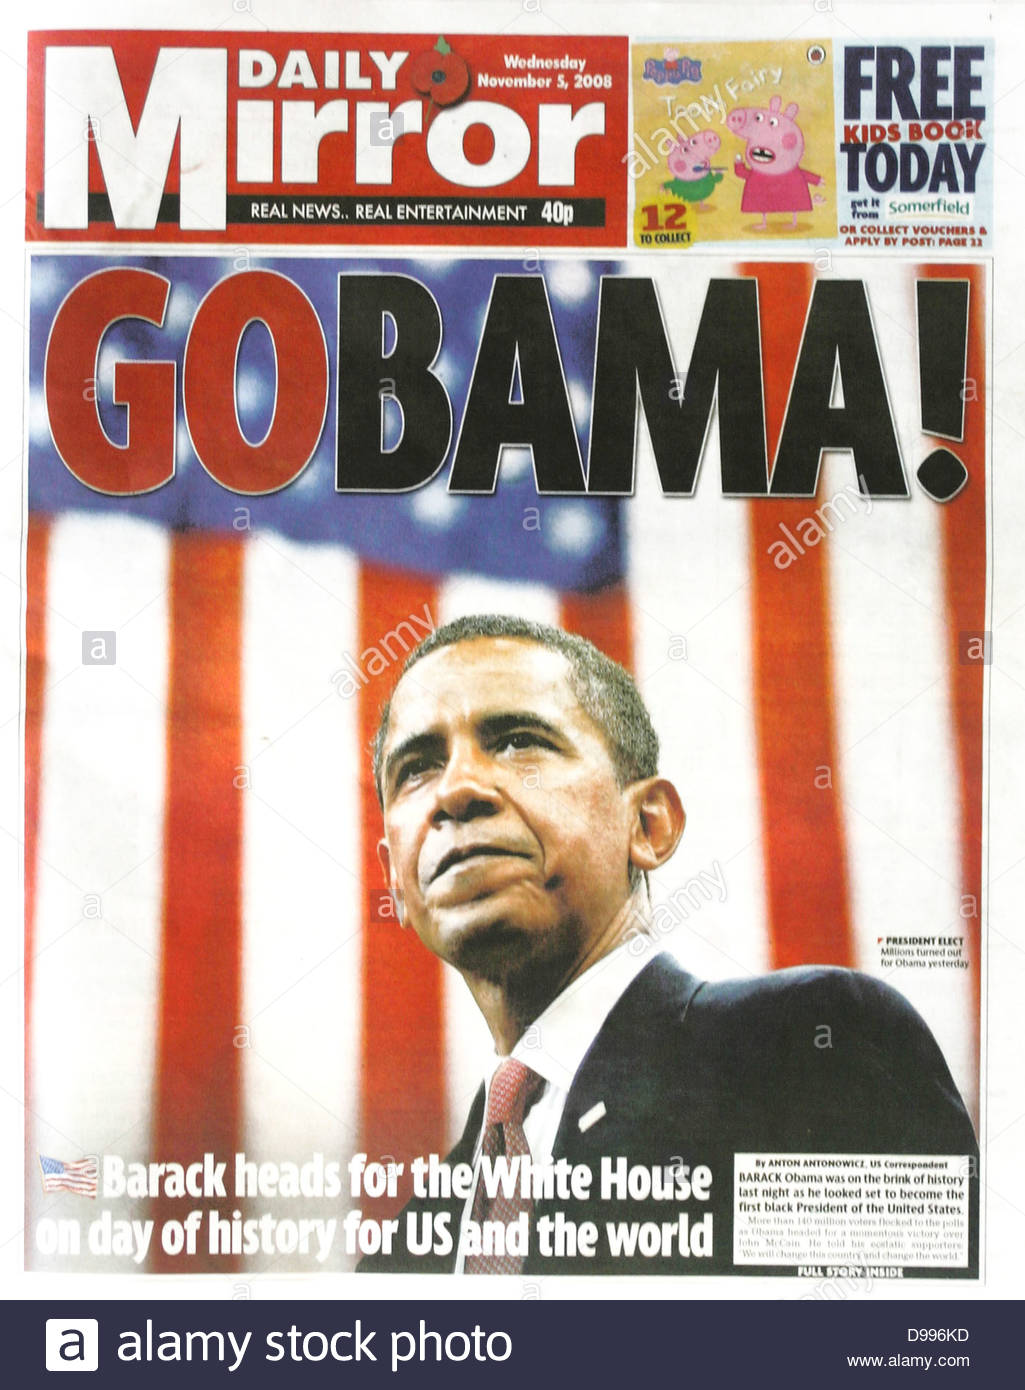 Daily Mirror English Newspaper Headline On Election Of Barak Obama As President In 2008